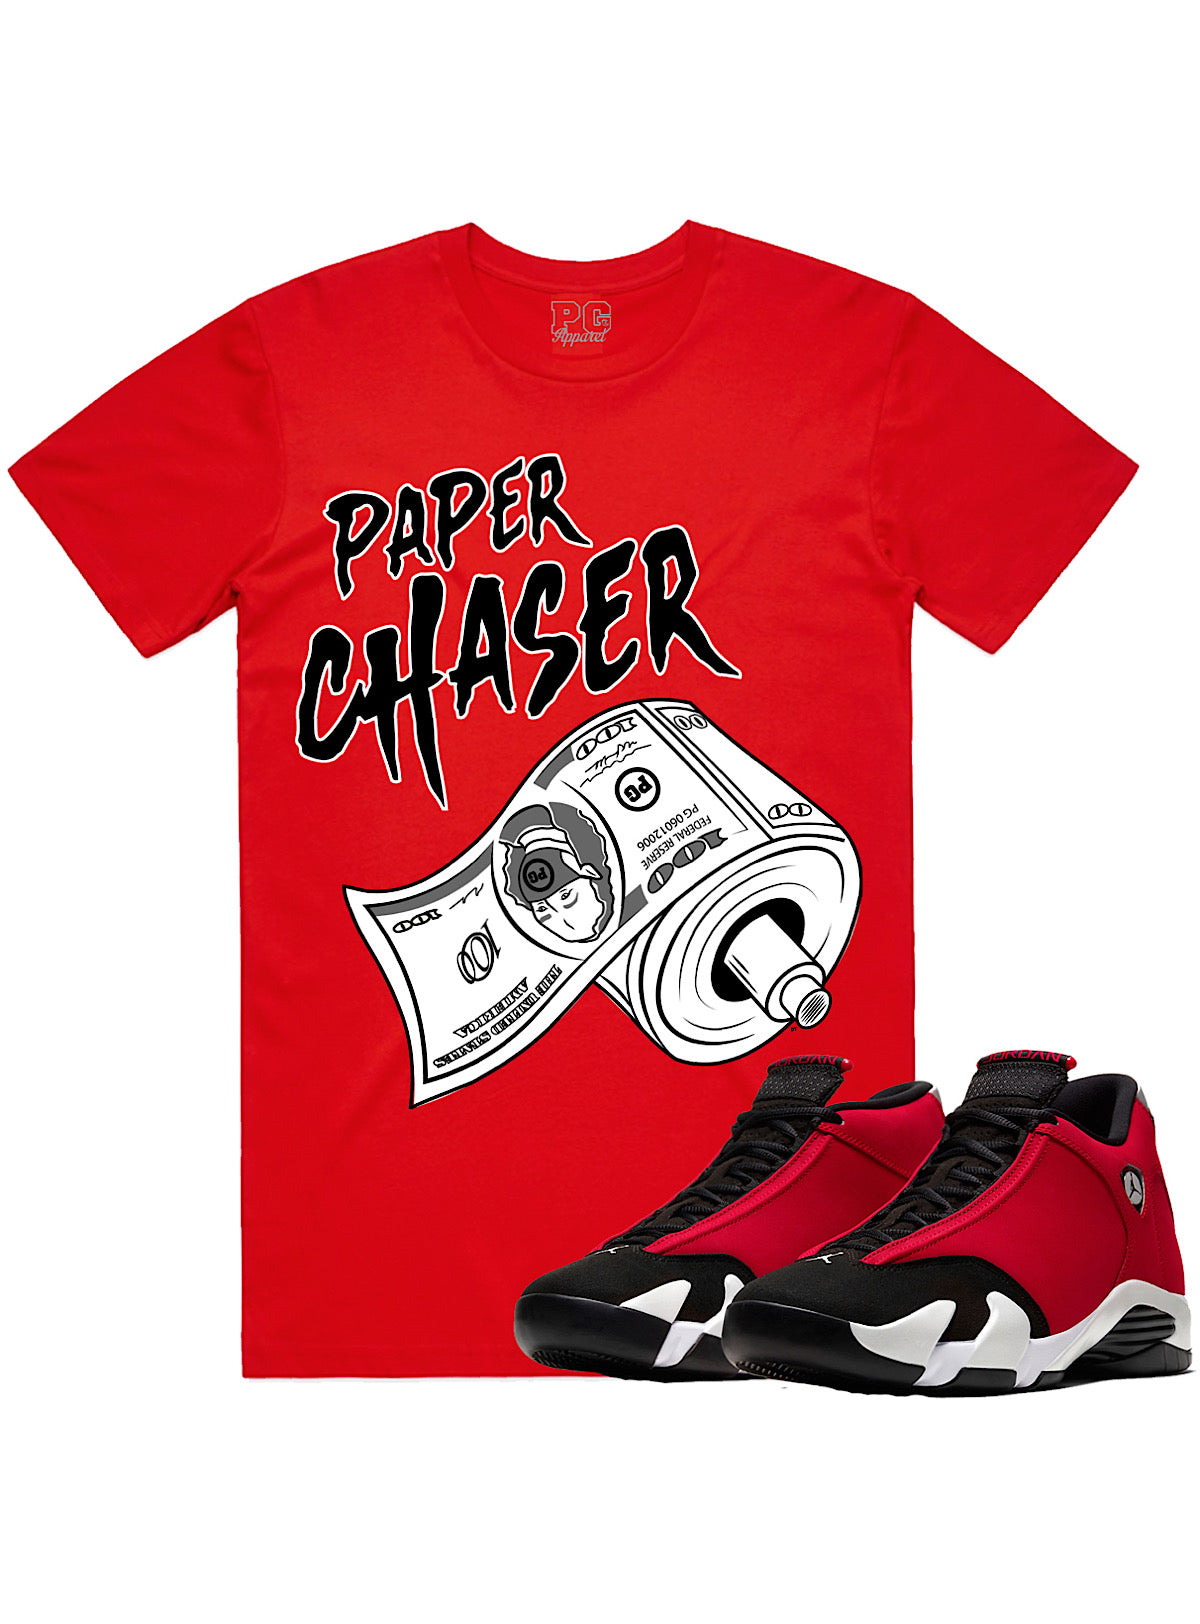 PG Apparel T-Shirt - Paper Chaser - Red - PC100